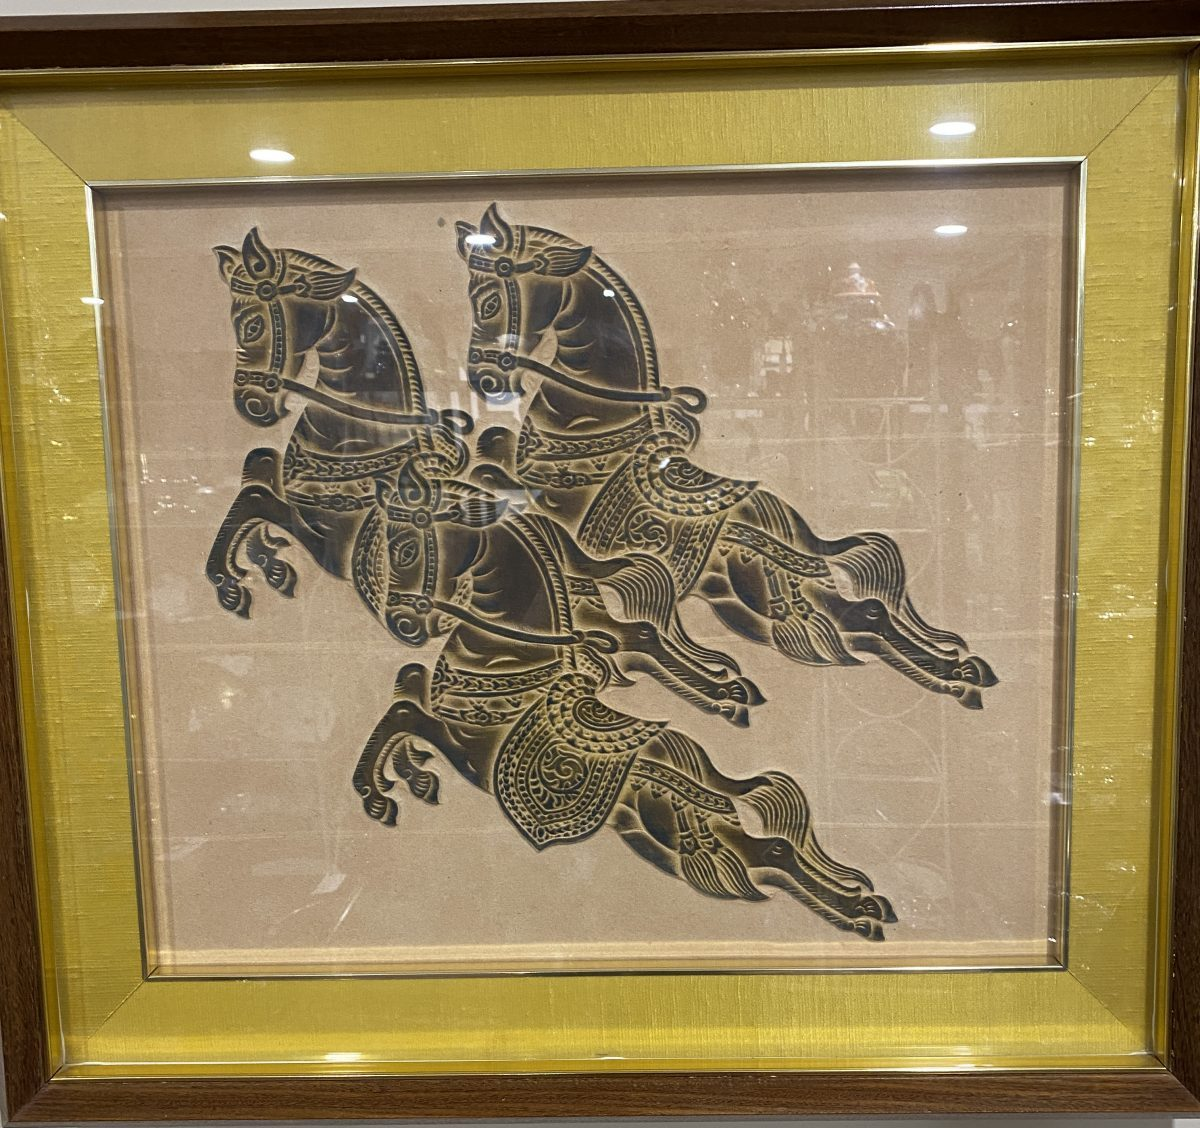 G4 - A nicely framed Thai Temple rubbing of 3 prancing horses.  £95